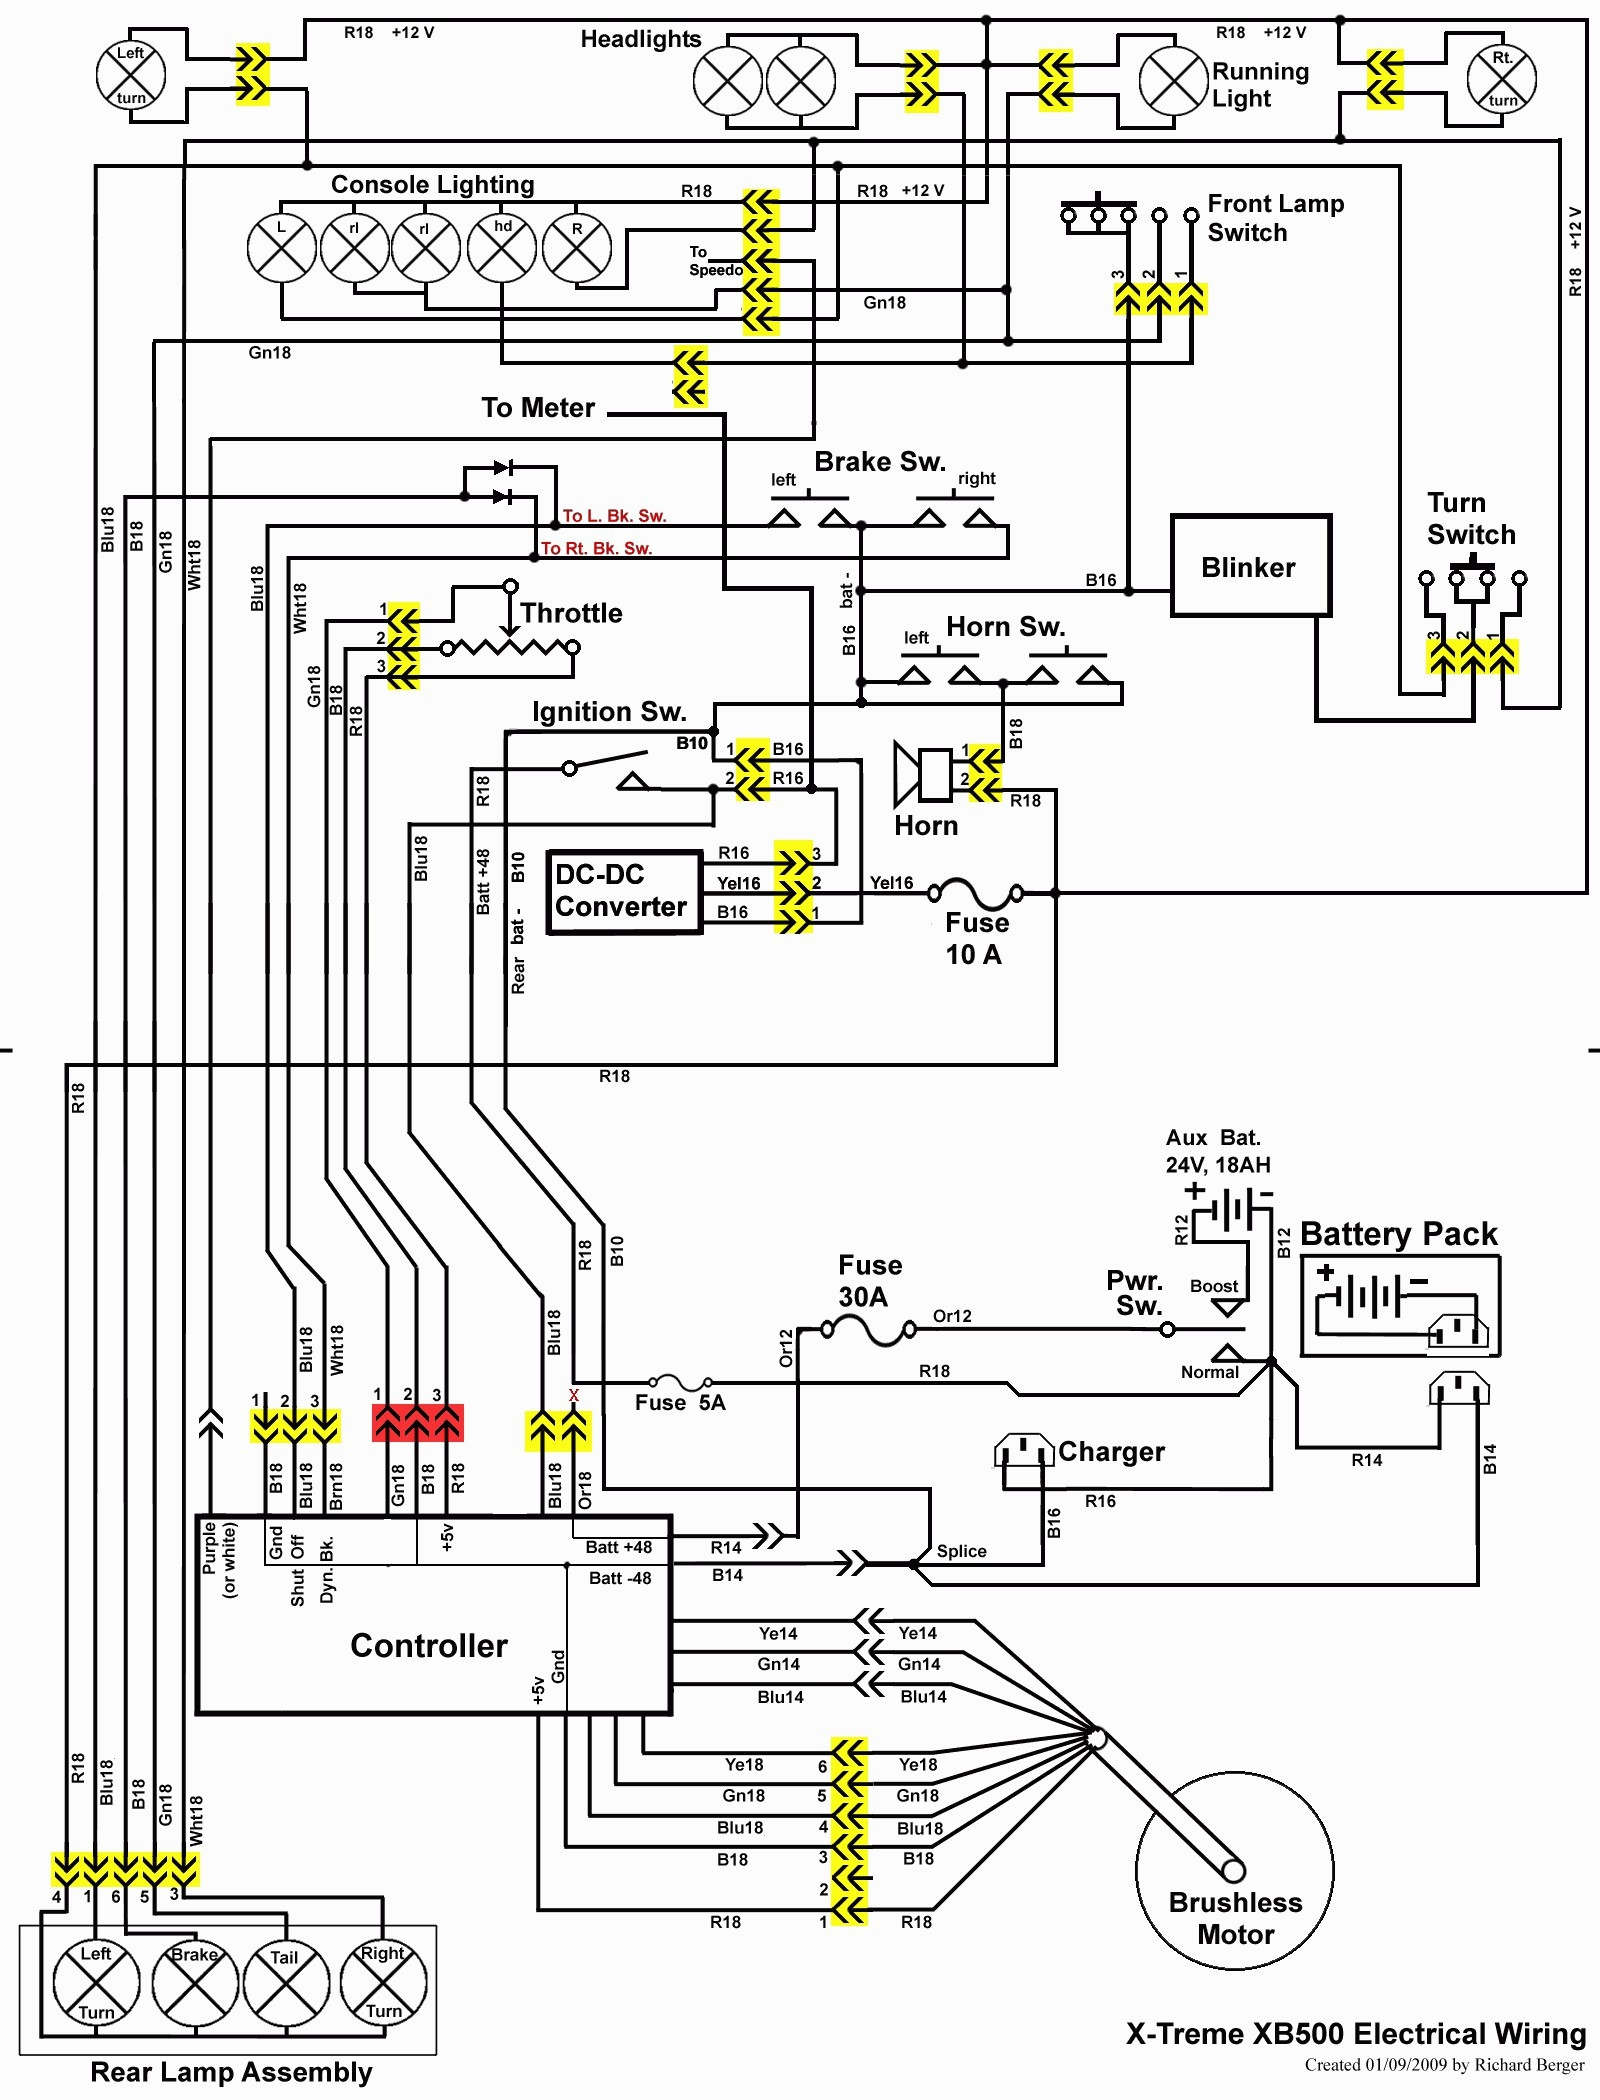 mobility scooter wiring diagram - wiring diagram electric scooter new baja  scooter 48 volt wiring schematic